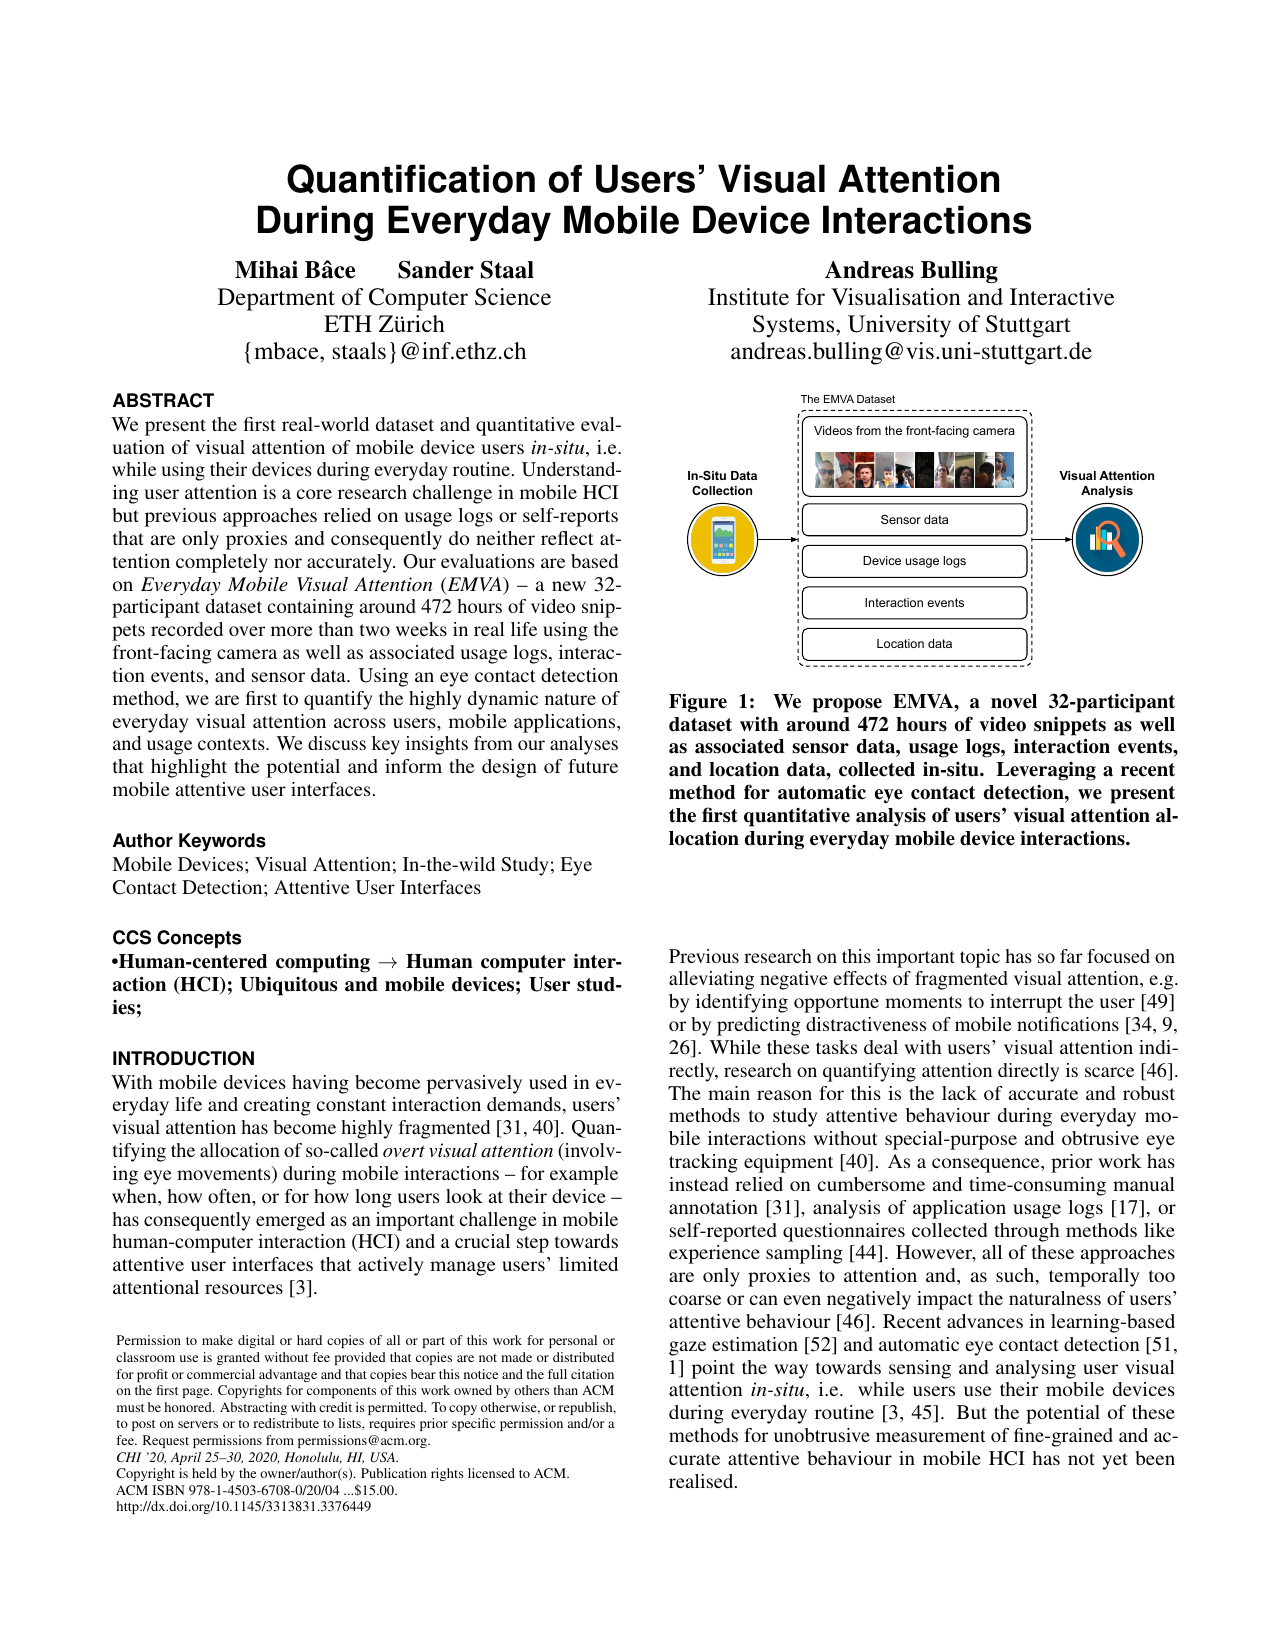 Quantification of Users' Visual Attention During Everyday Mobile Device Interactions